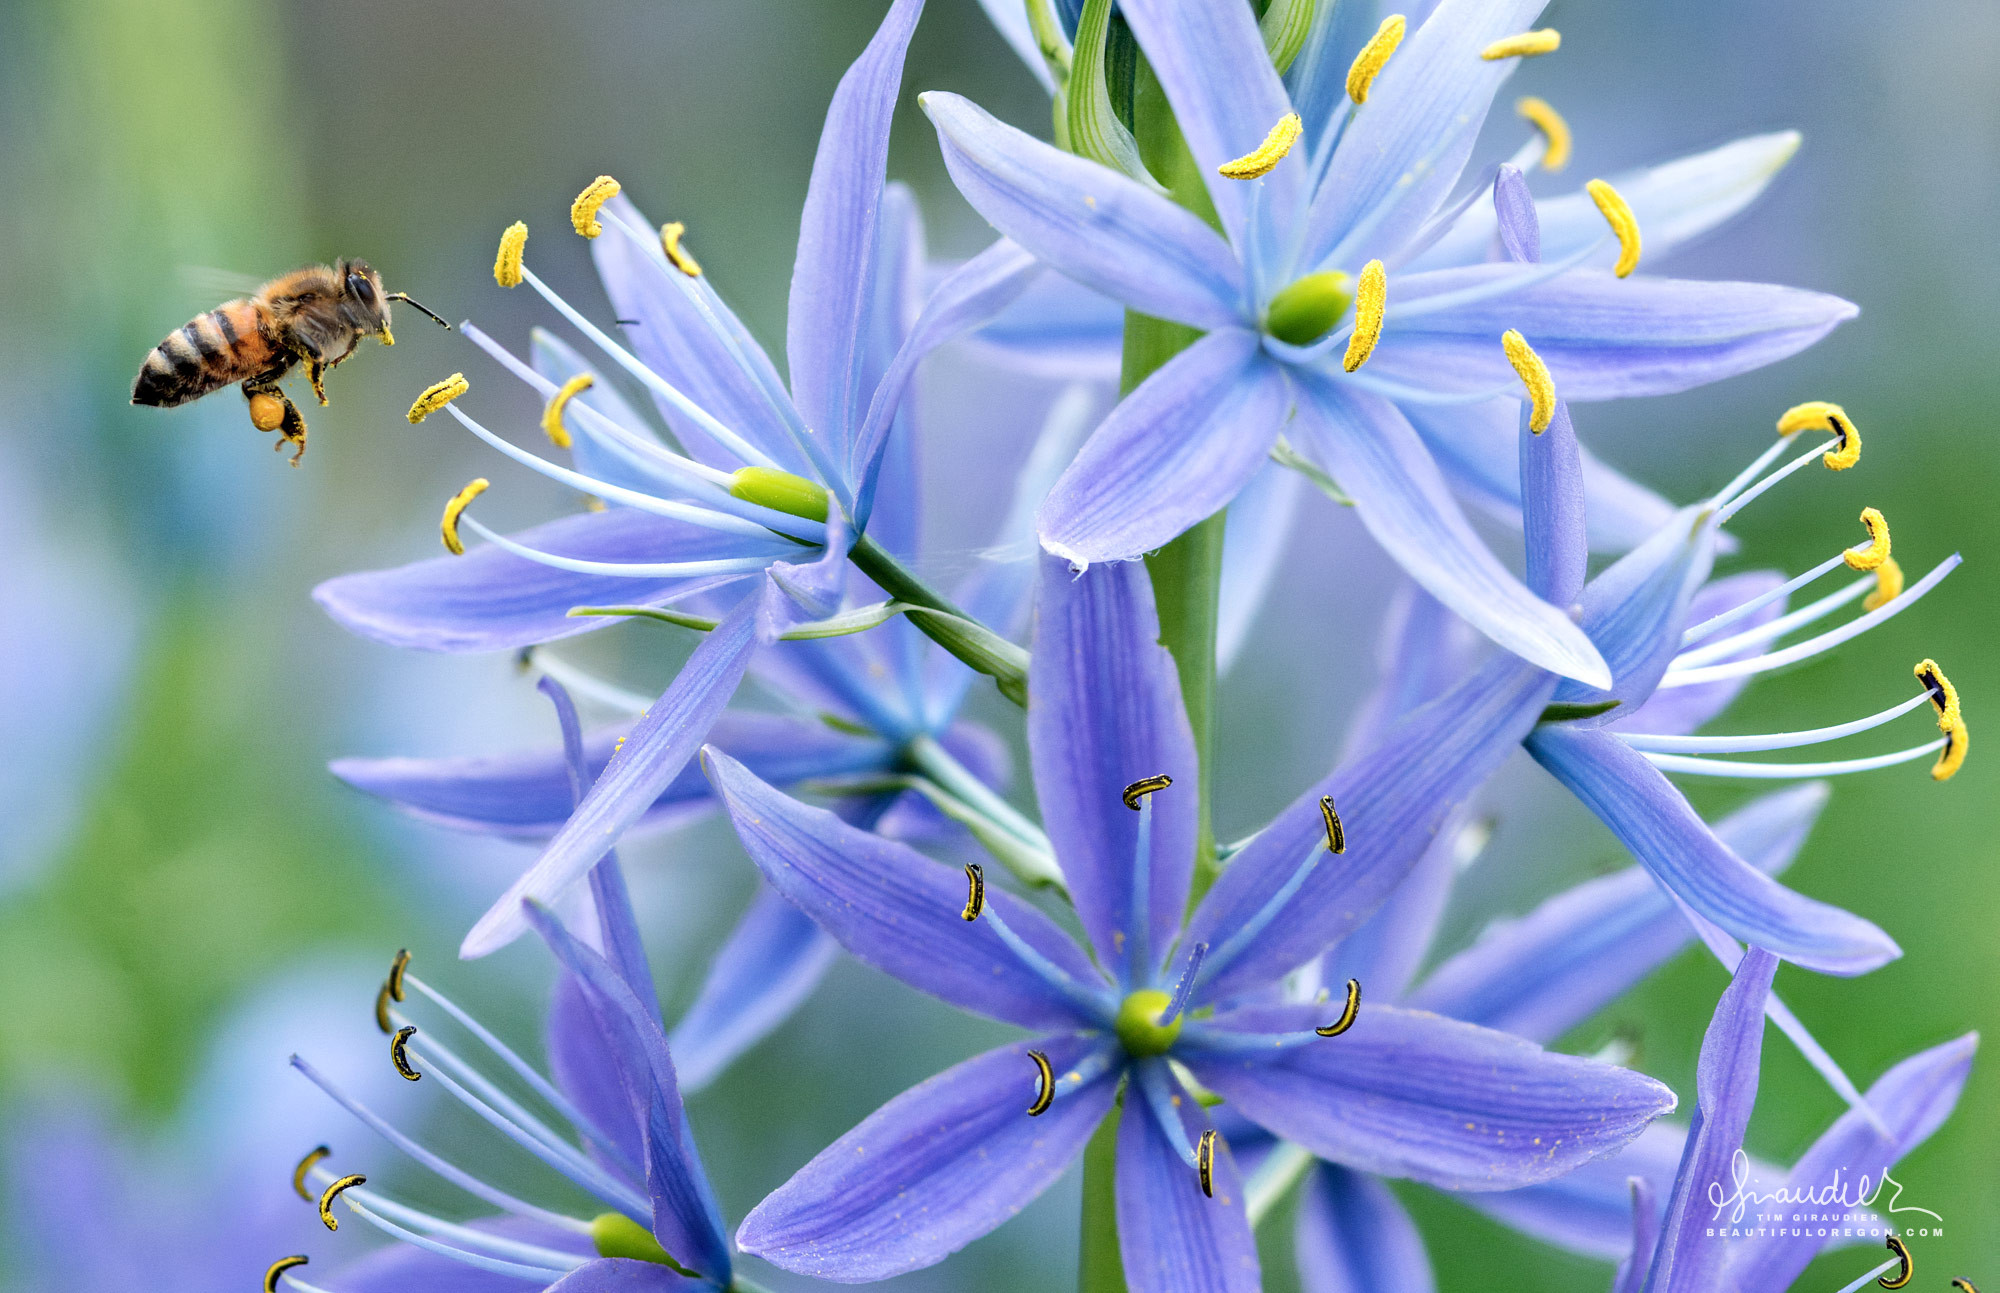 A honey bee gathers nectar and pollen from Camas Lily at Mount Pisgah Arboretum. Lane County, Willamette Valley, Oregon.